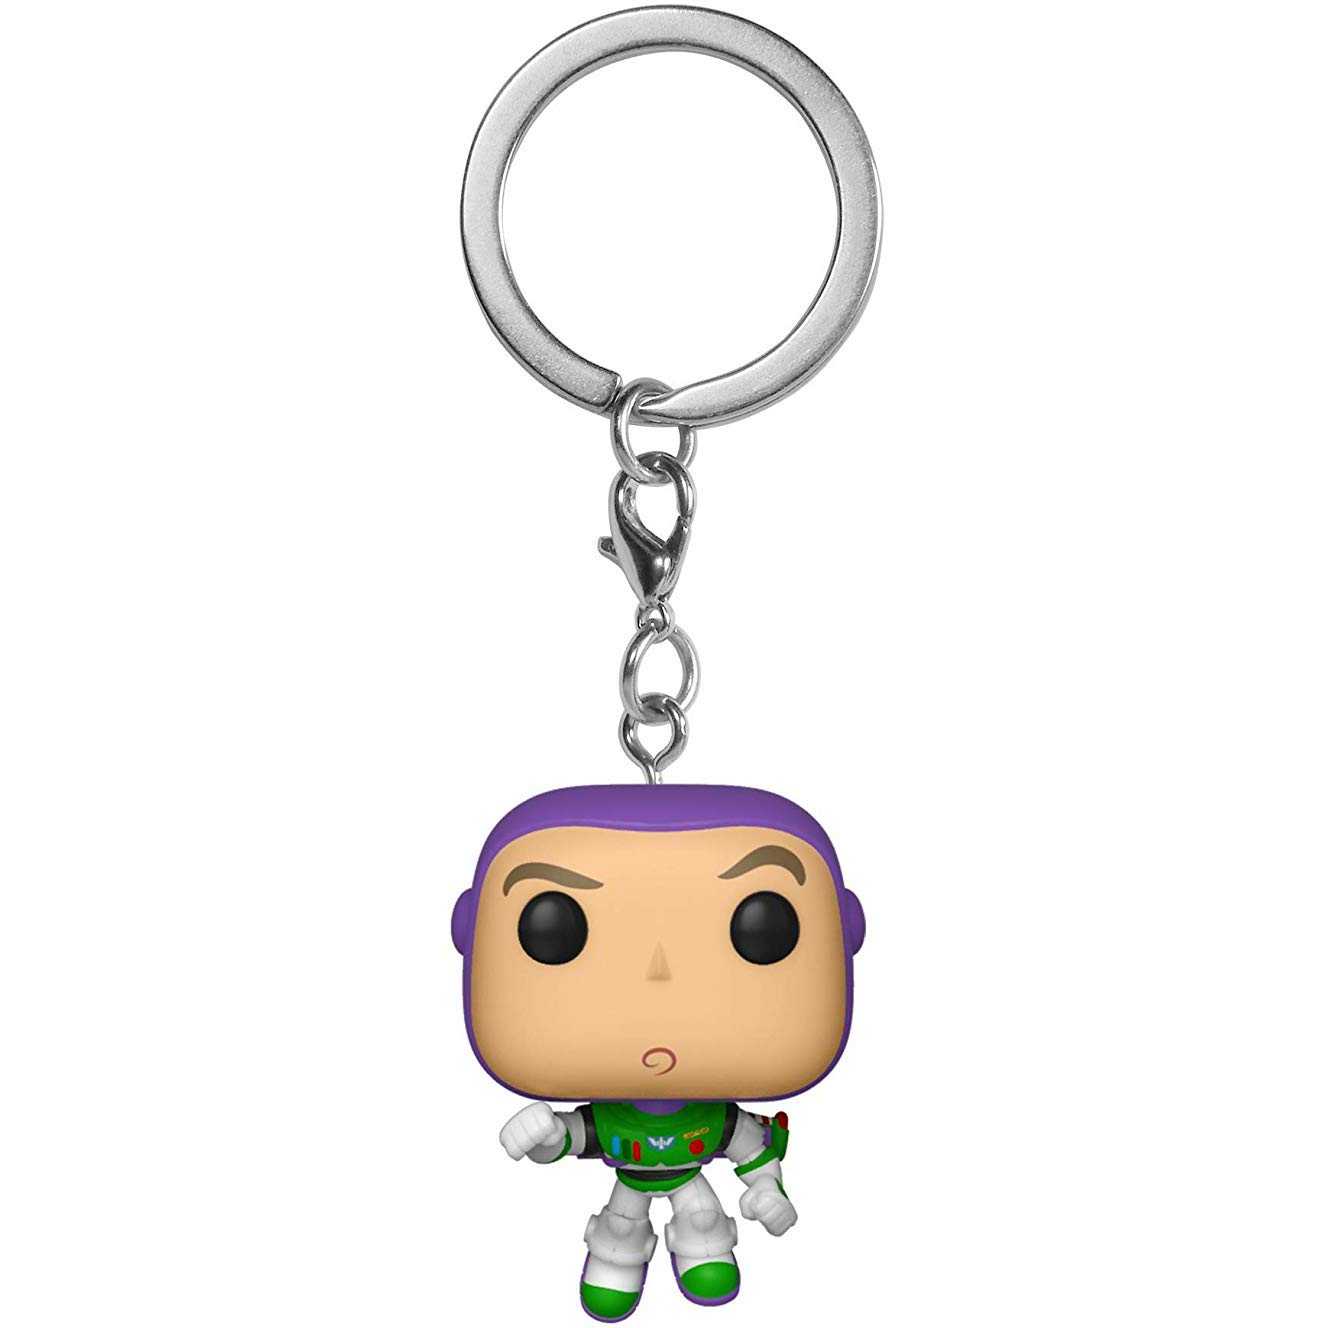 Amazon.com: Buzz Lightyear: Funko Pocket POP! Llavero ...